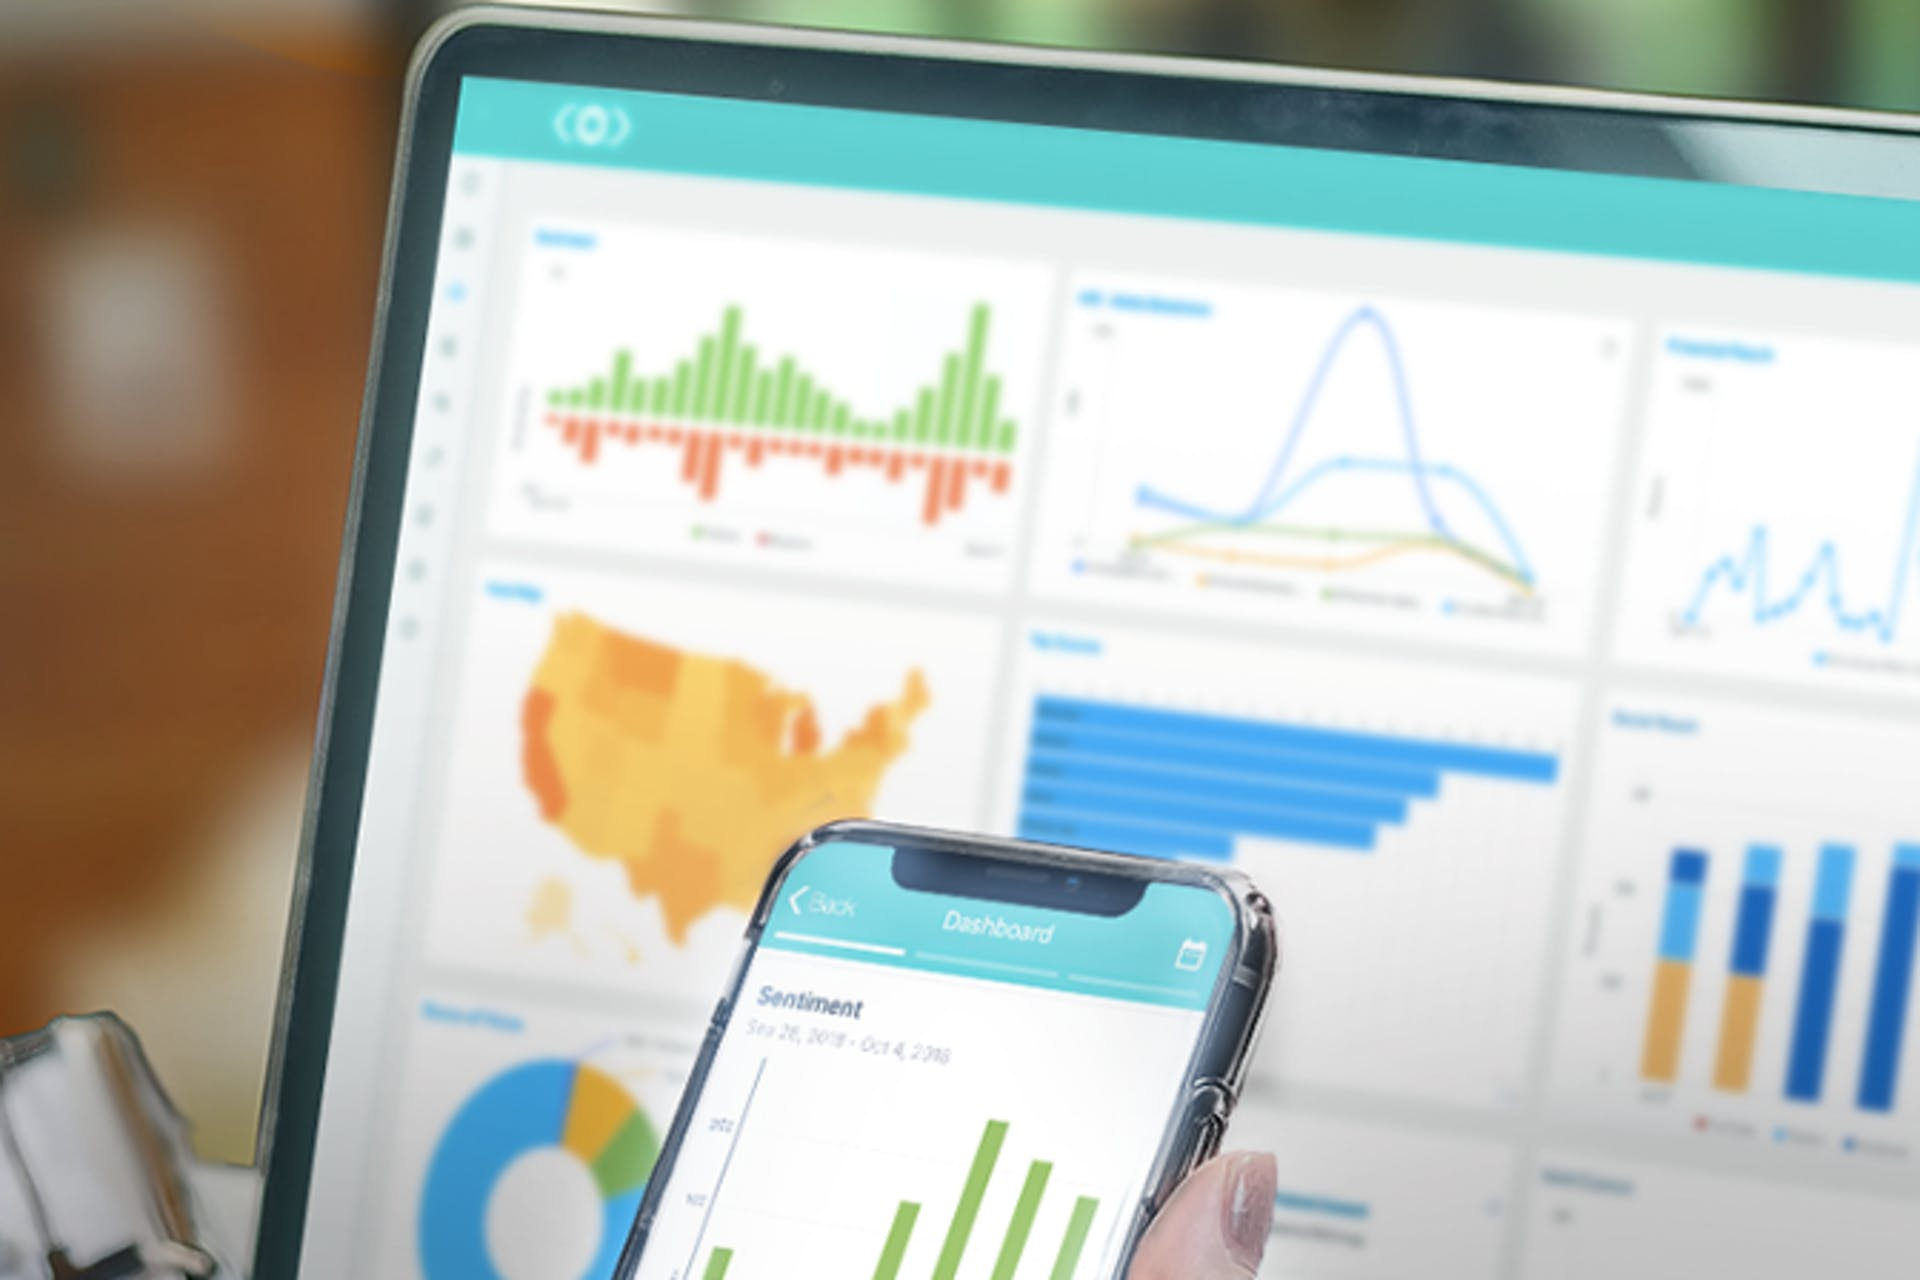 Laptop and cell phone both depicting charts and graphs.